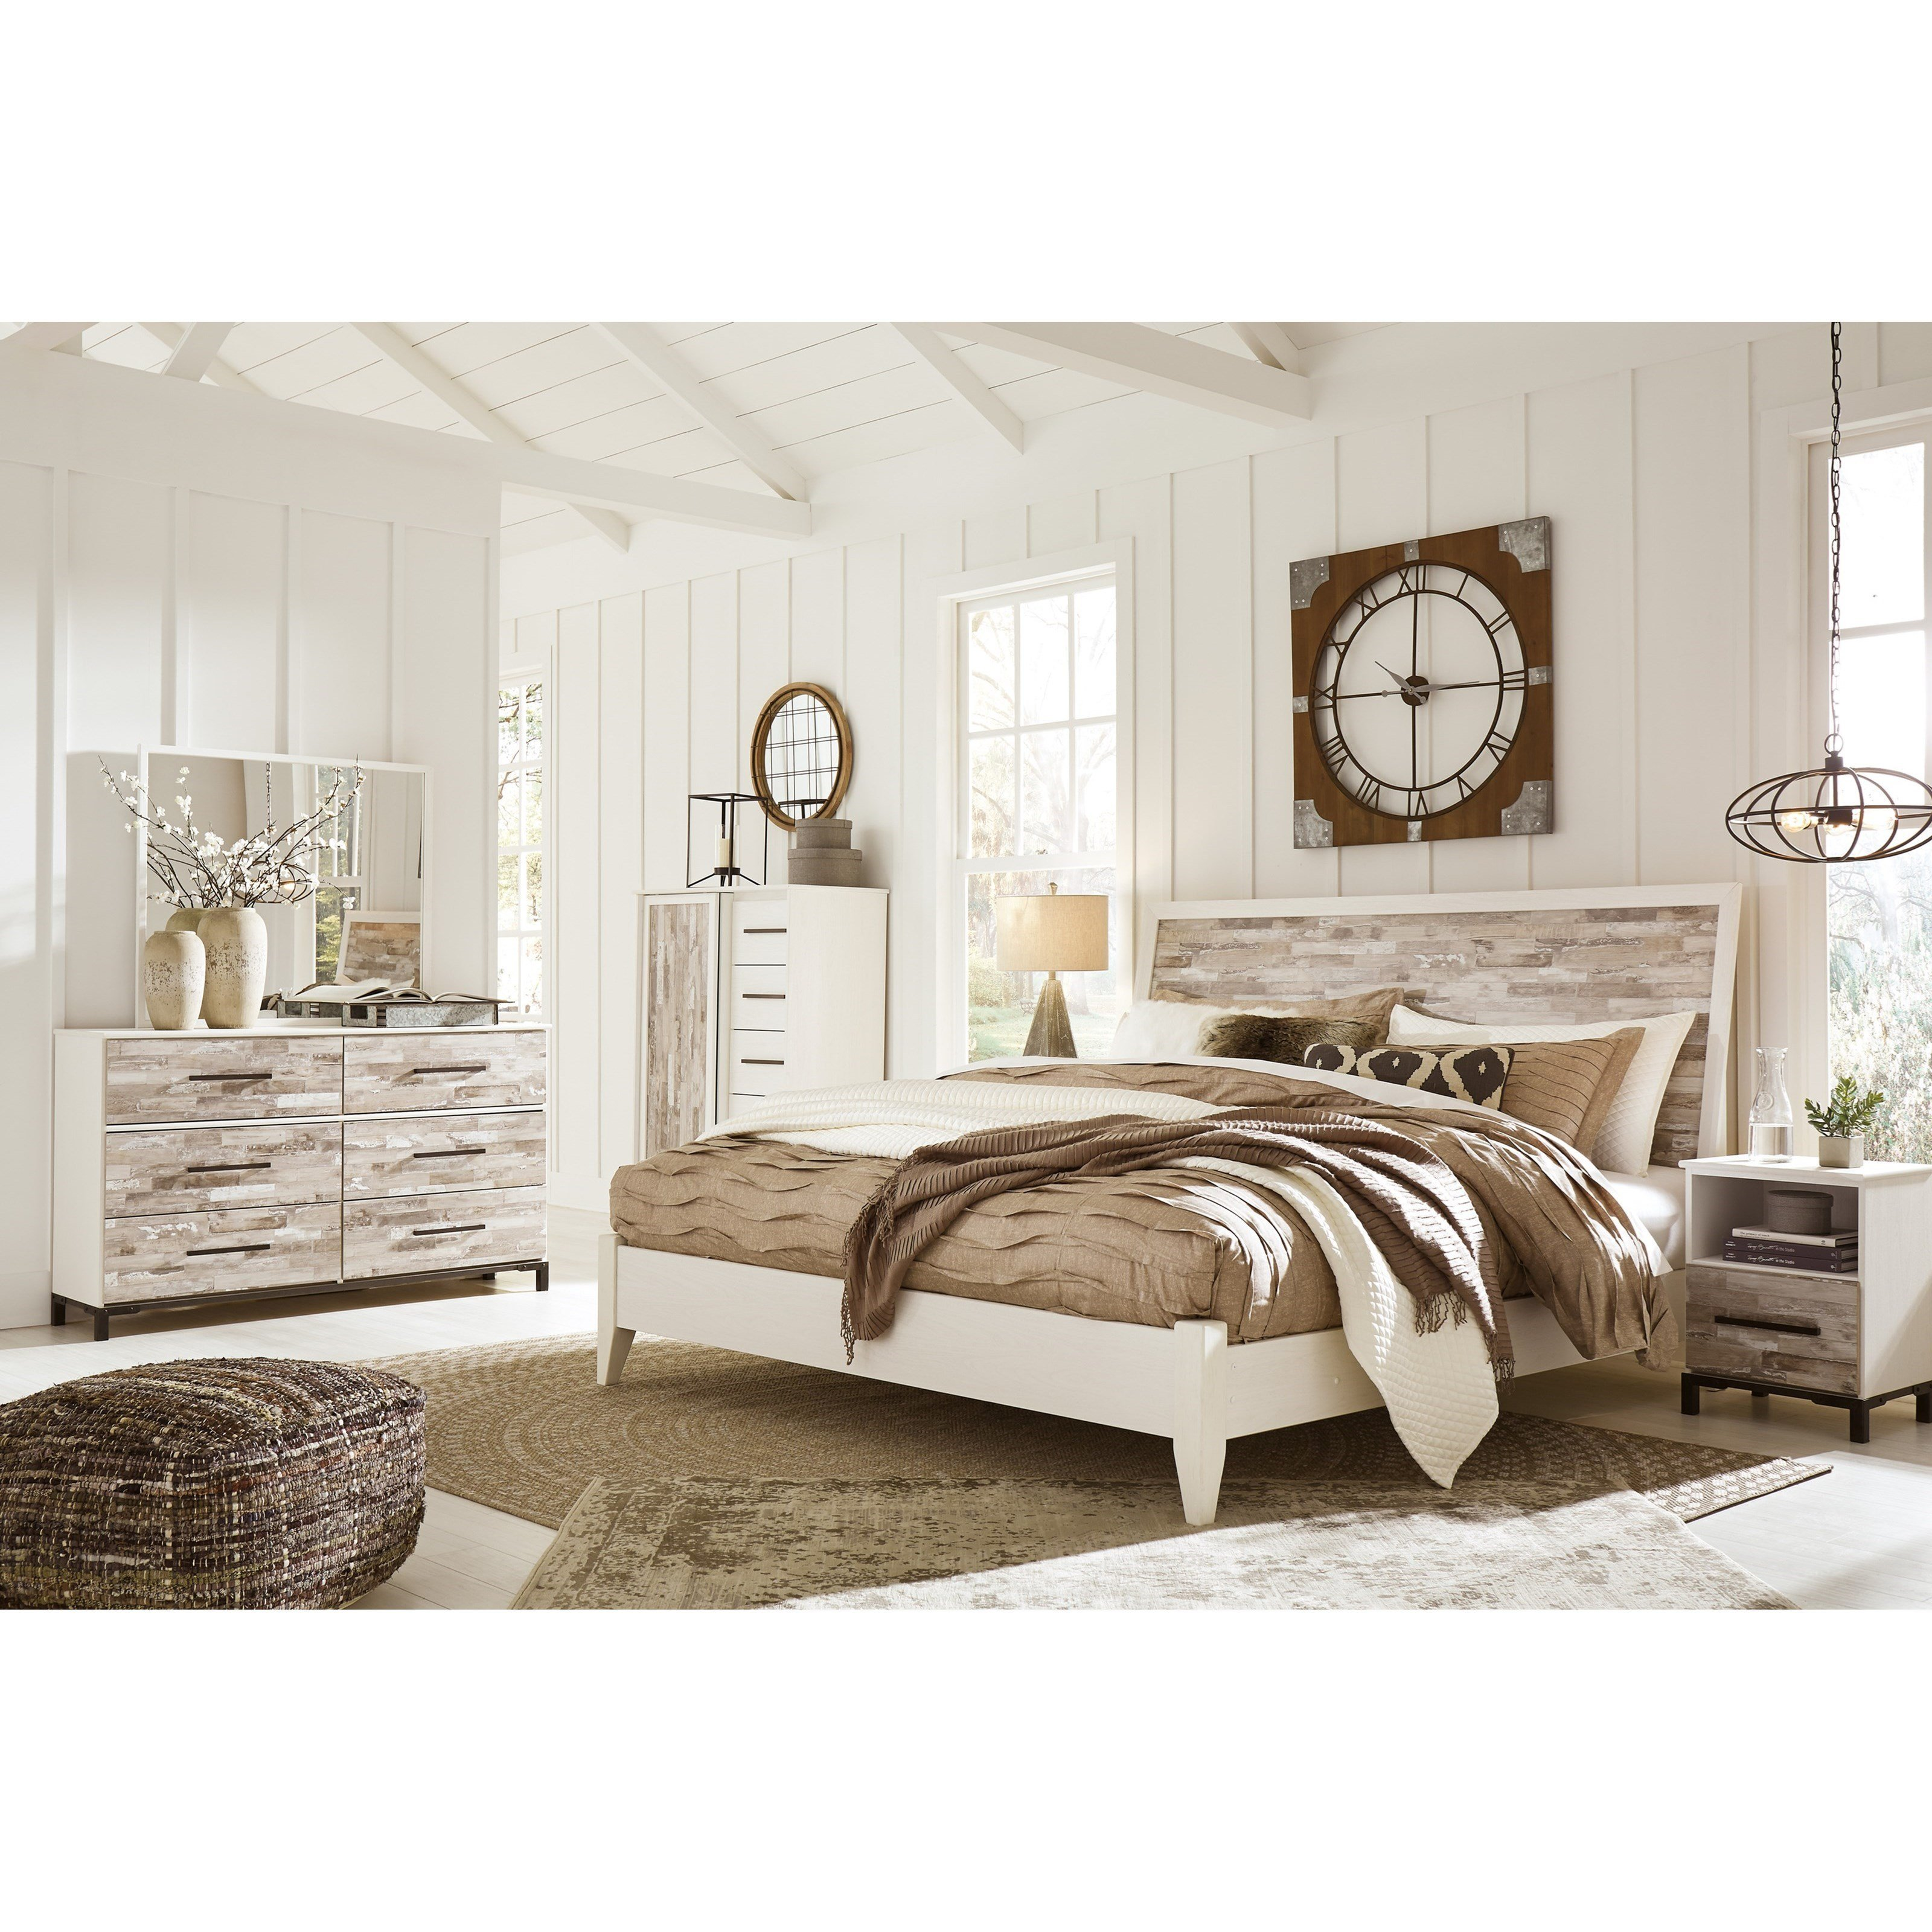 Best Signature Design By Ashley Evanni King Bedroom Group With Pictures